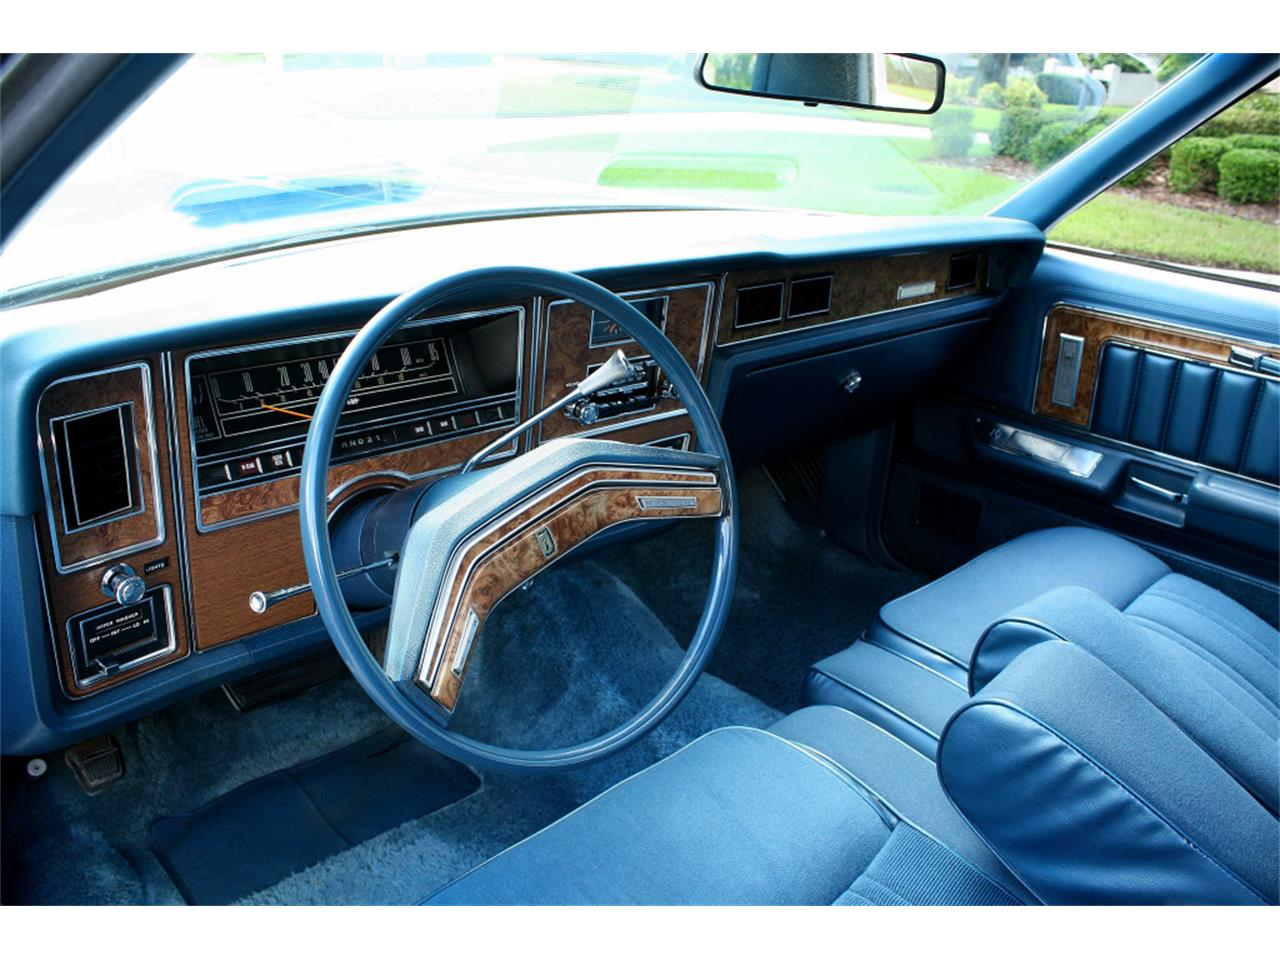 Large Picture of '77 Marquis located in Florida - $16,500.00 Offered by MJC Classic Cars - JAVE